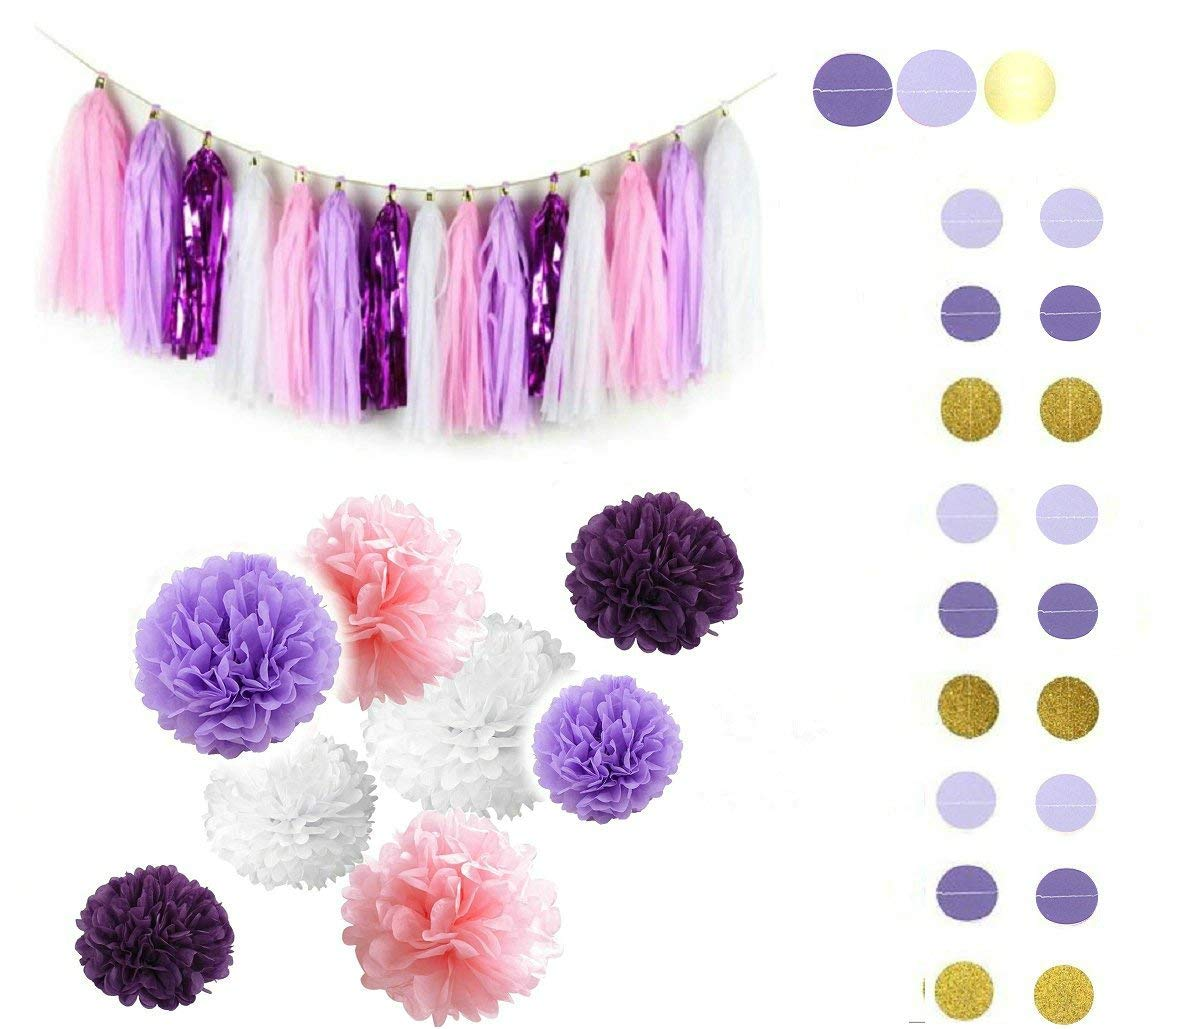 Fascola 30ps Purple Lavender Baby Pink White Baby Shower Tissue Paper Pom Pom Paper Tassel Garland First Birthday Decorations Purple Bridal Shower Decorations Snow or Sea Theme Party Decor